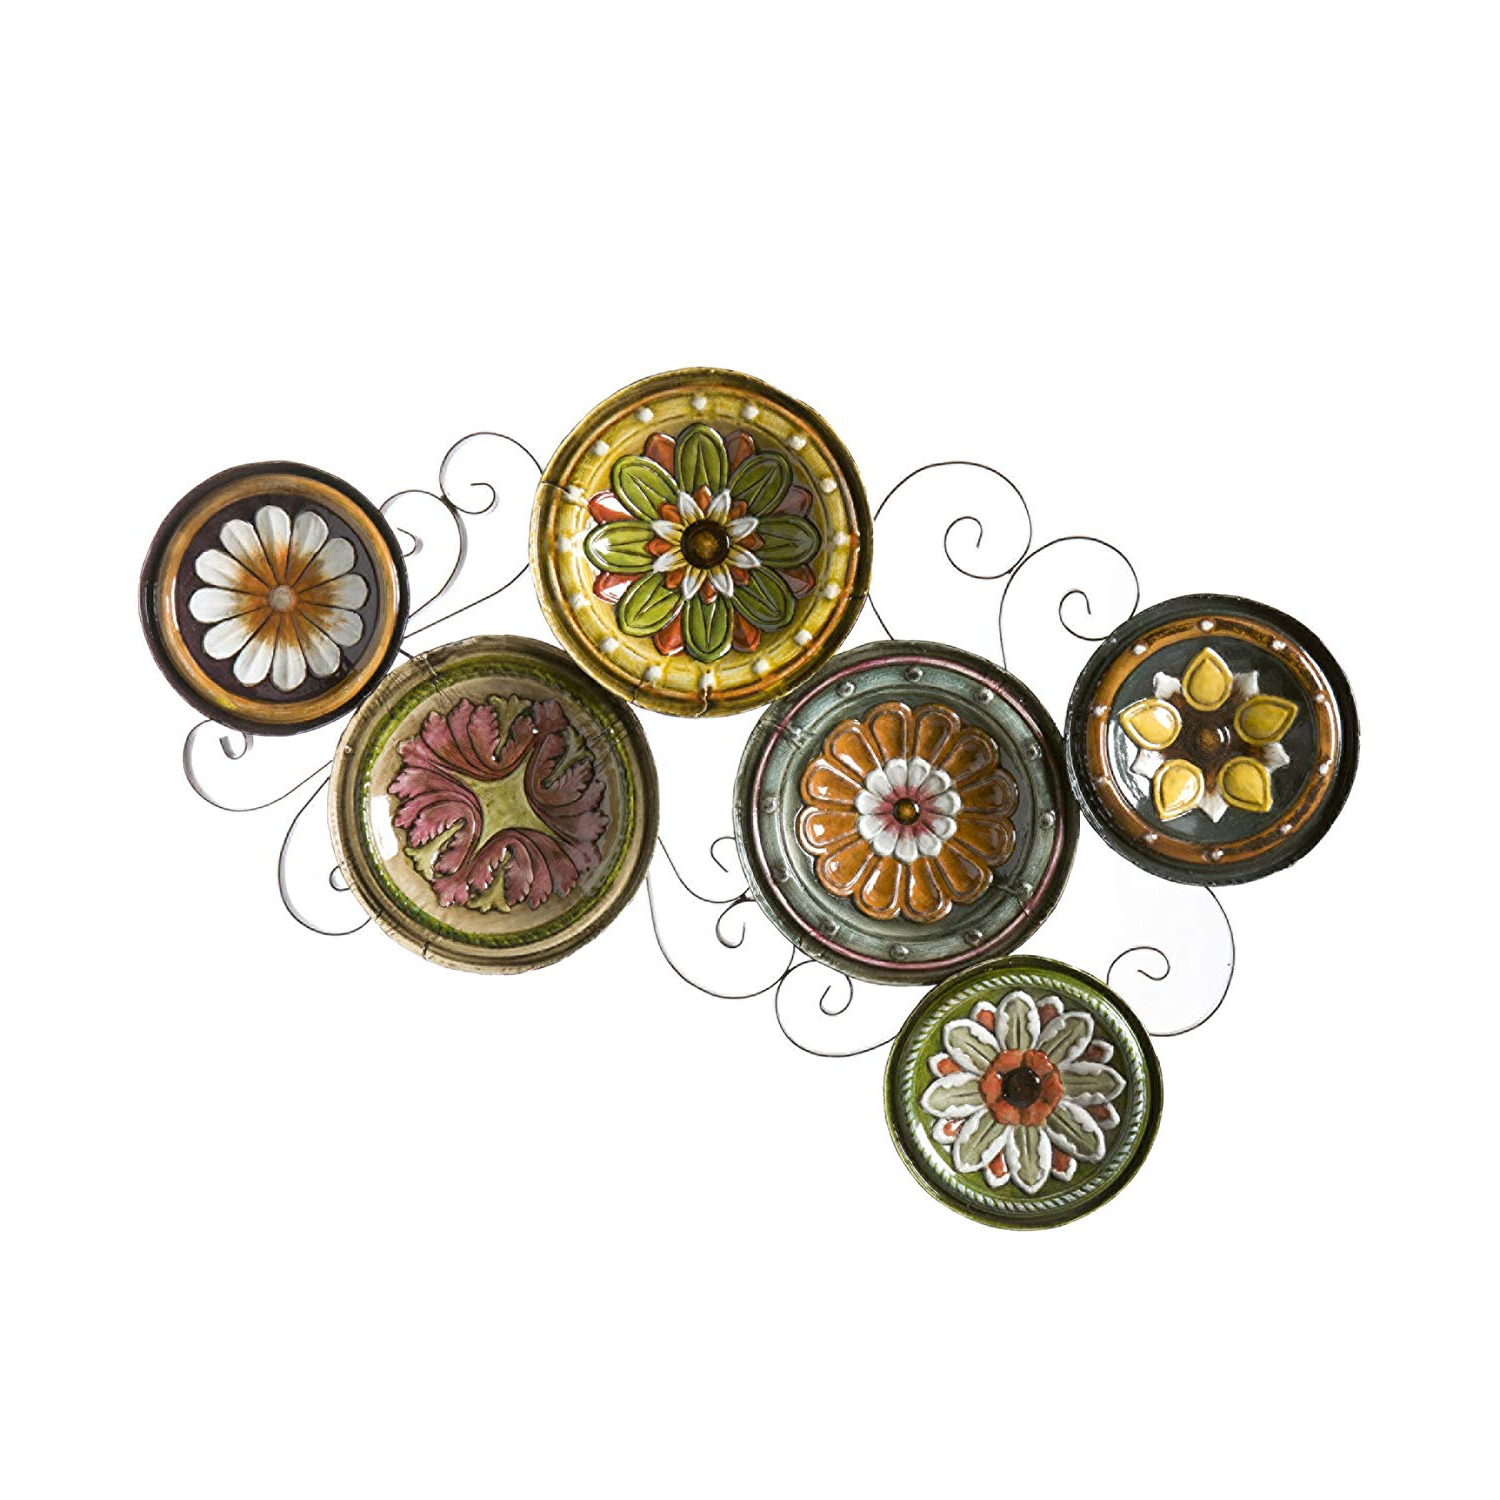 2020 Amazon: Southern Enterprises Scattered Italian Plates Wall Art In Scattered Metal Italian Plates Wall Decor (View 2 of 20)